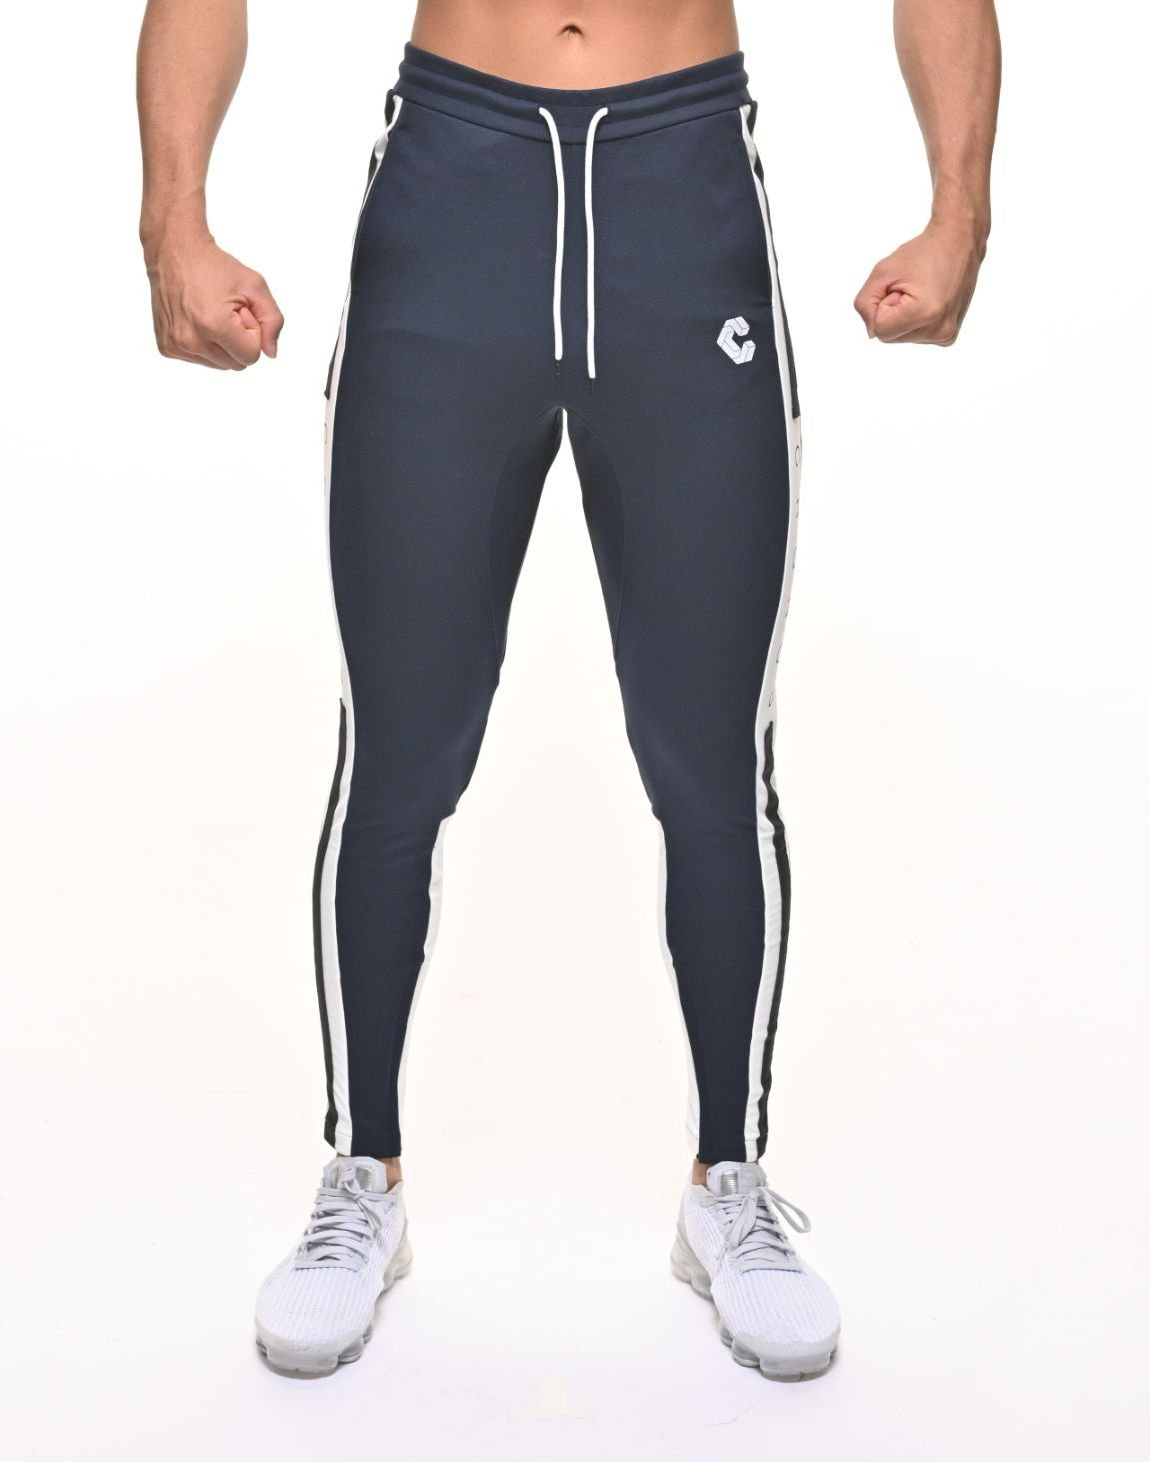 <img class='new_mark_img1' src='https://img.shop-pro.jp/img/new/icons1.gif' style='border:none;display:inline;margin:0px;padding:0px;width:auto;' />CRONOS SIDE THICK TAPE PANTS【NAVY】